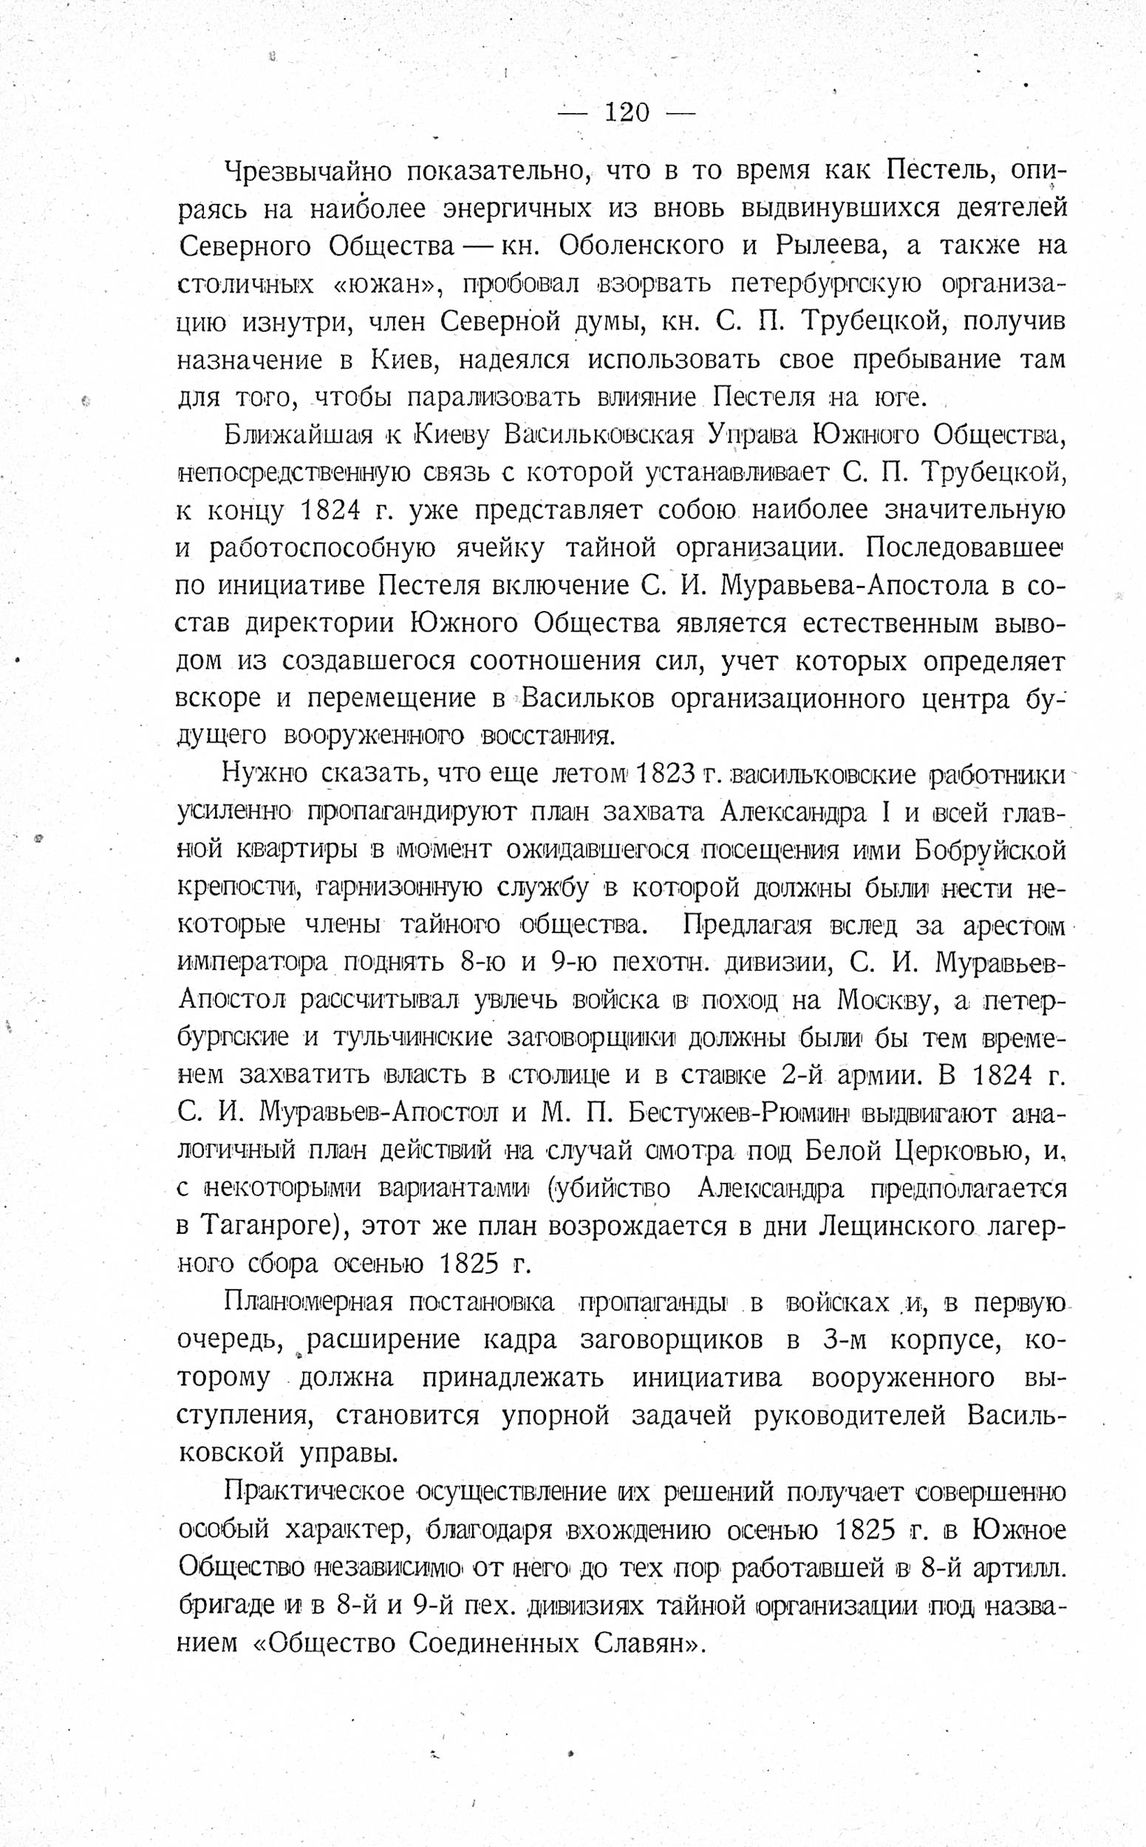 http://elib.shpl.ru/pages/625703/zooms/7